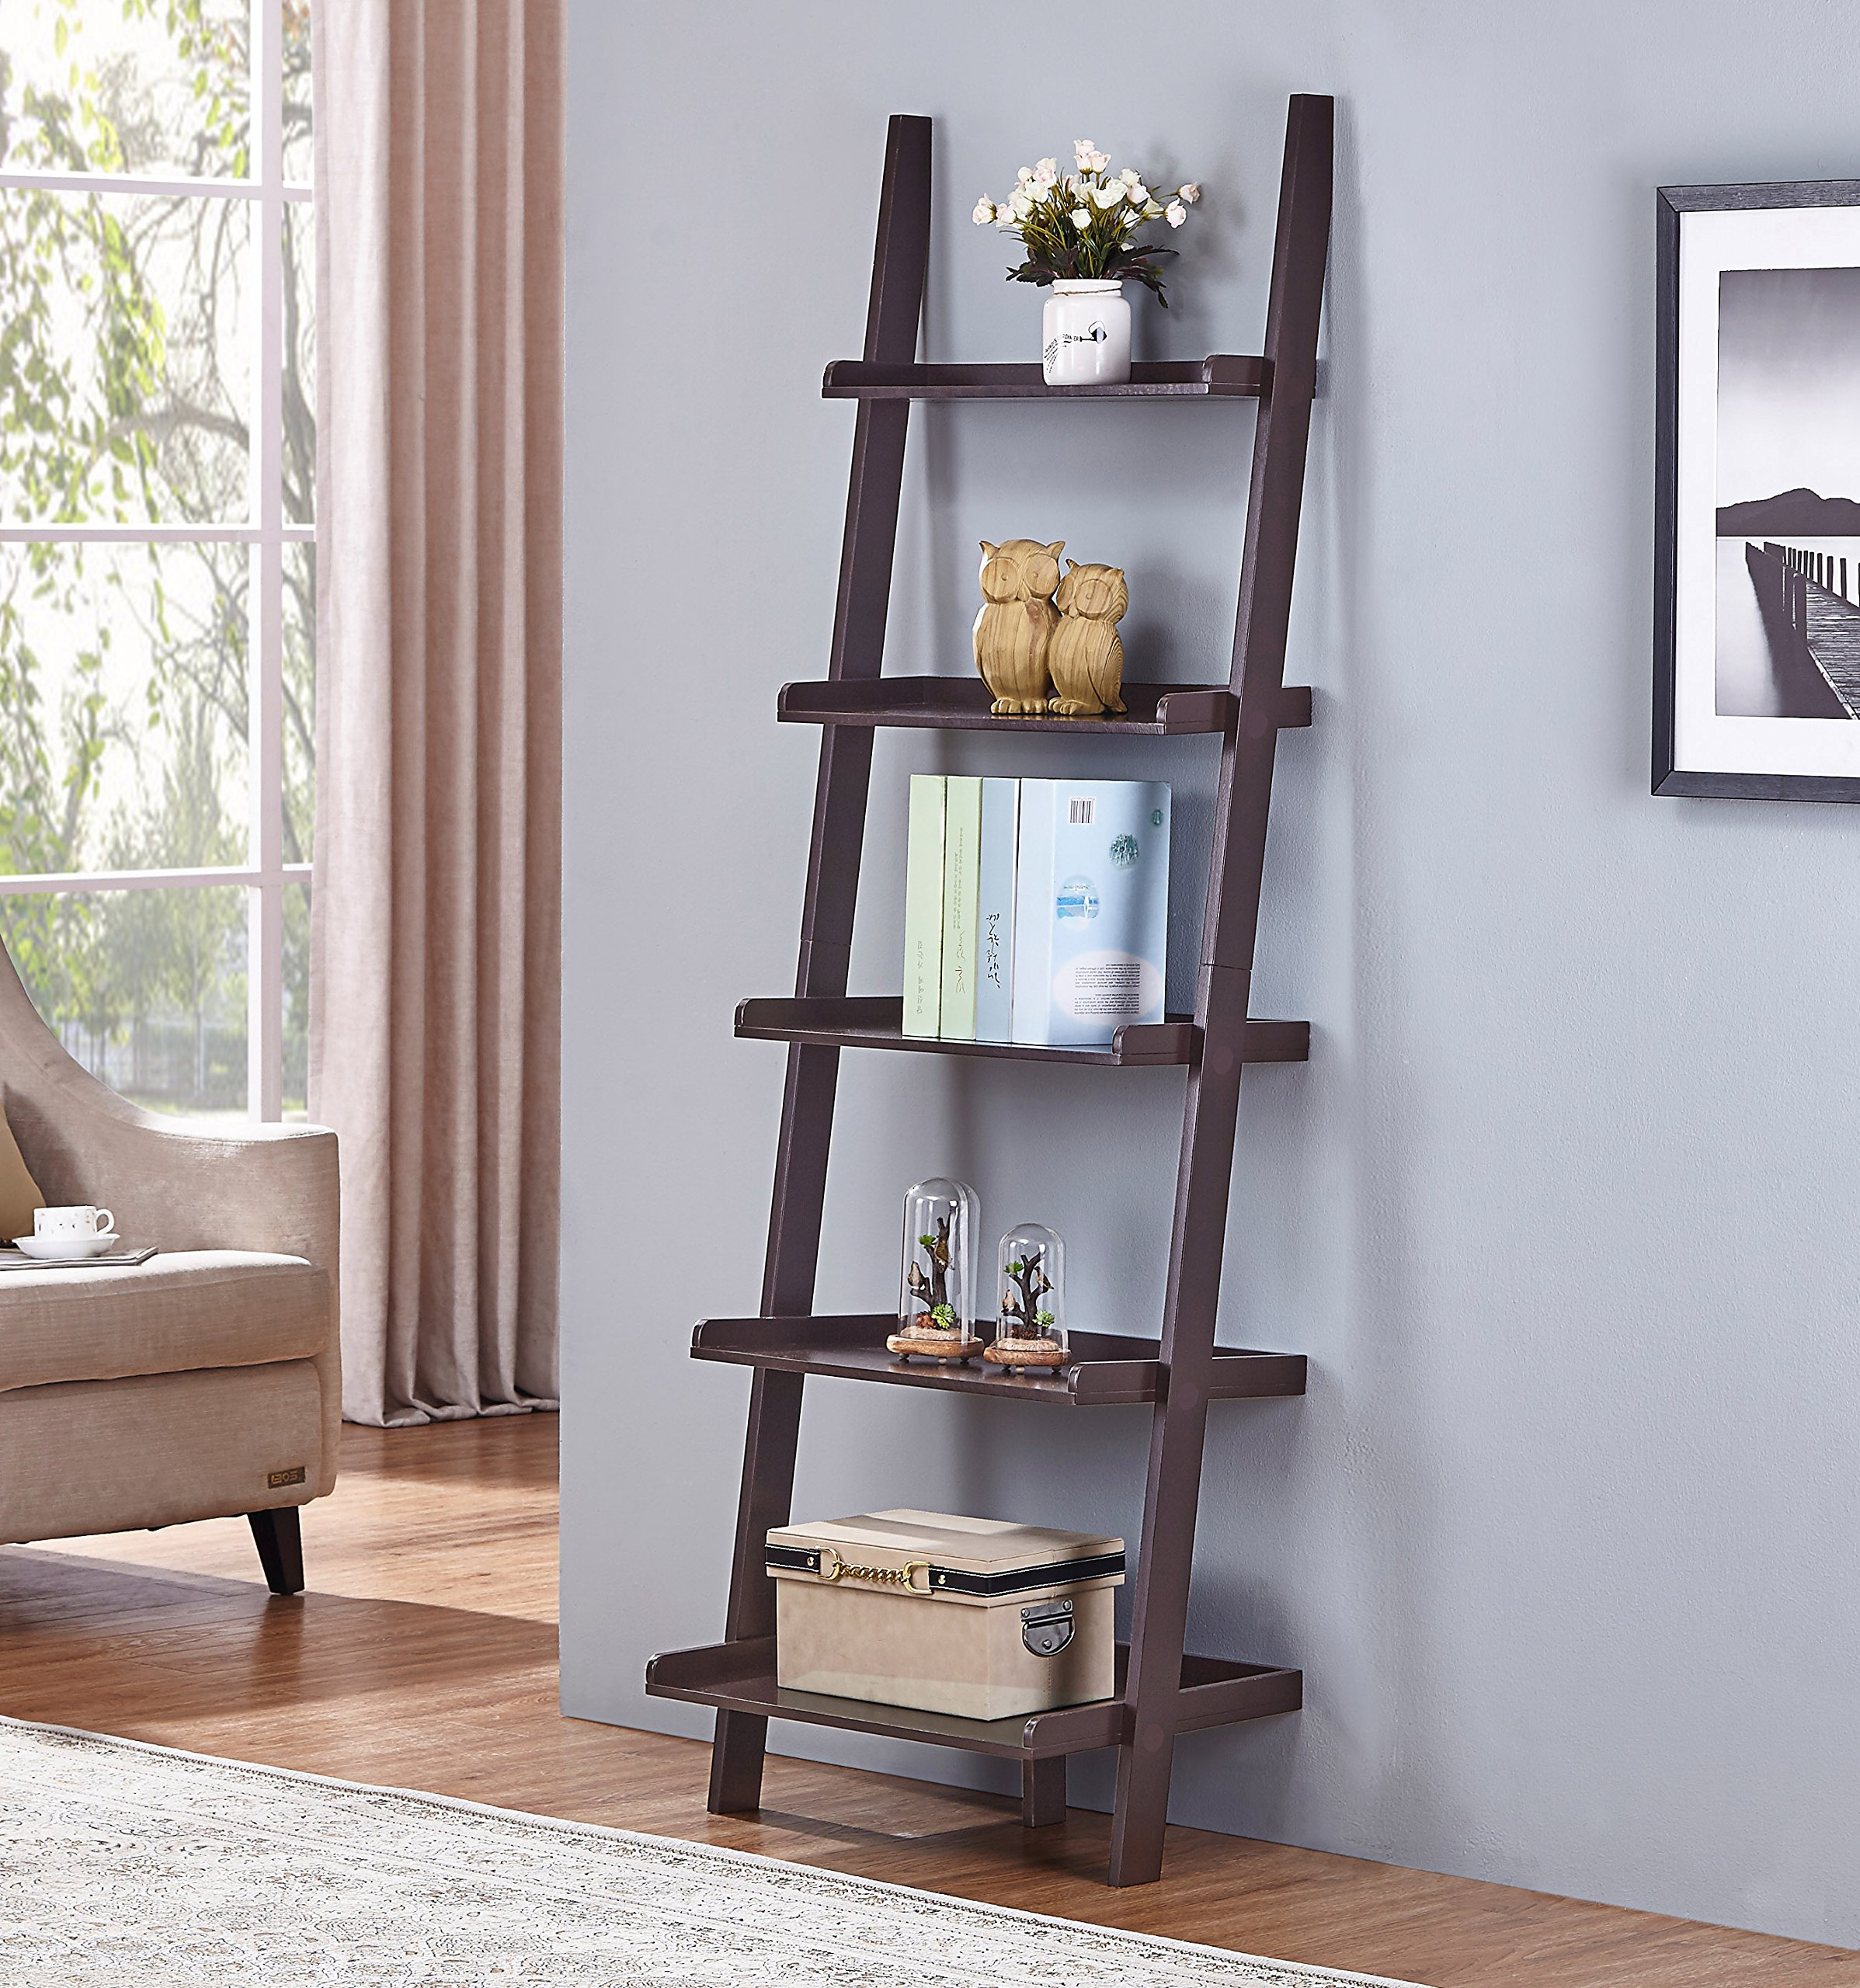 Espresso Finish 5 Tier Bookcase Shelf Ladder Leaning - 72'' Height by eHomeProducts